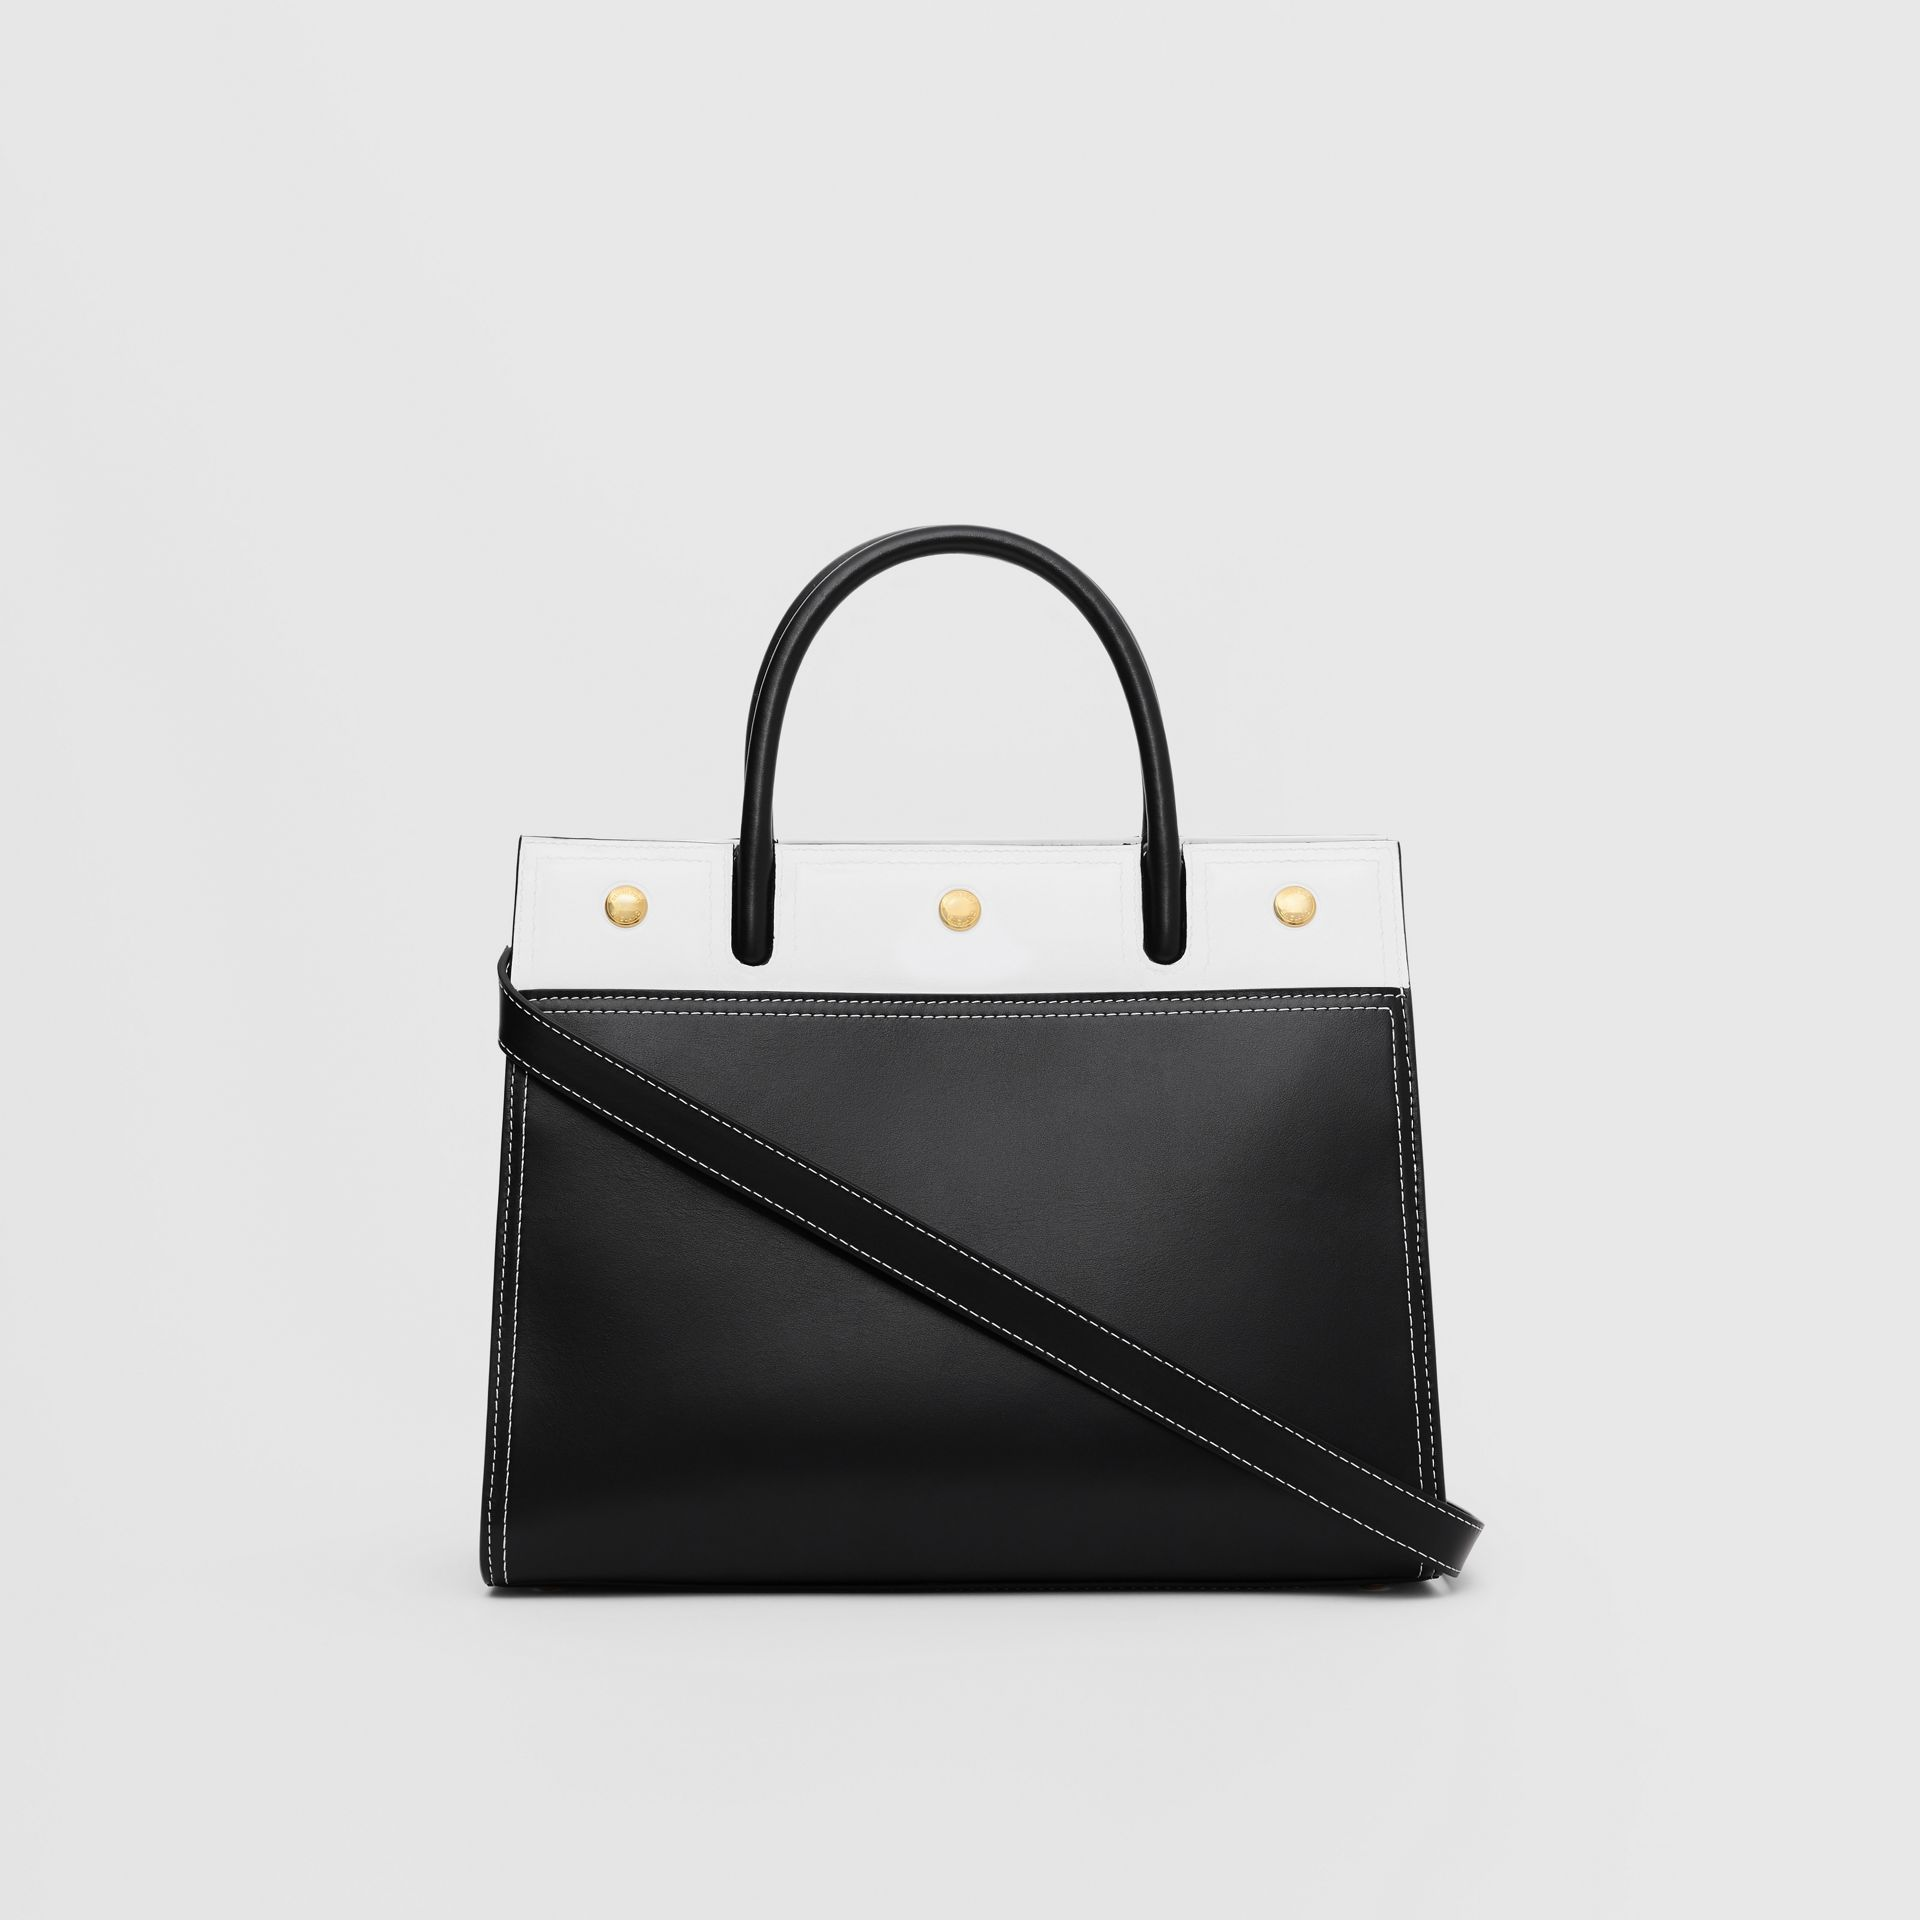 Small Leather Two-handle Title Bag in Black/white - Women | Burberry - gallery image 7